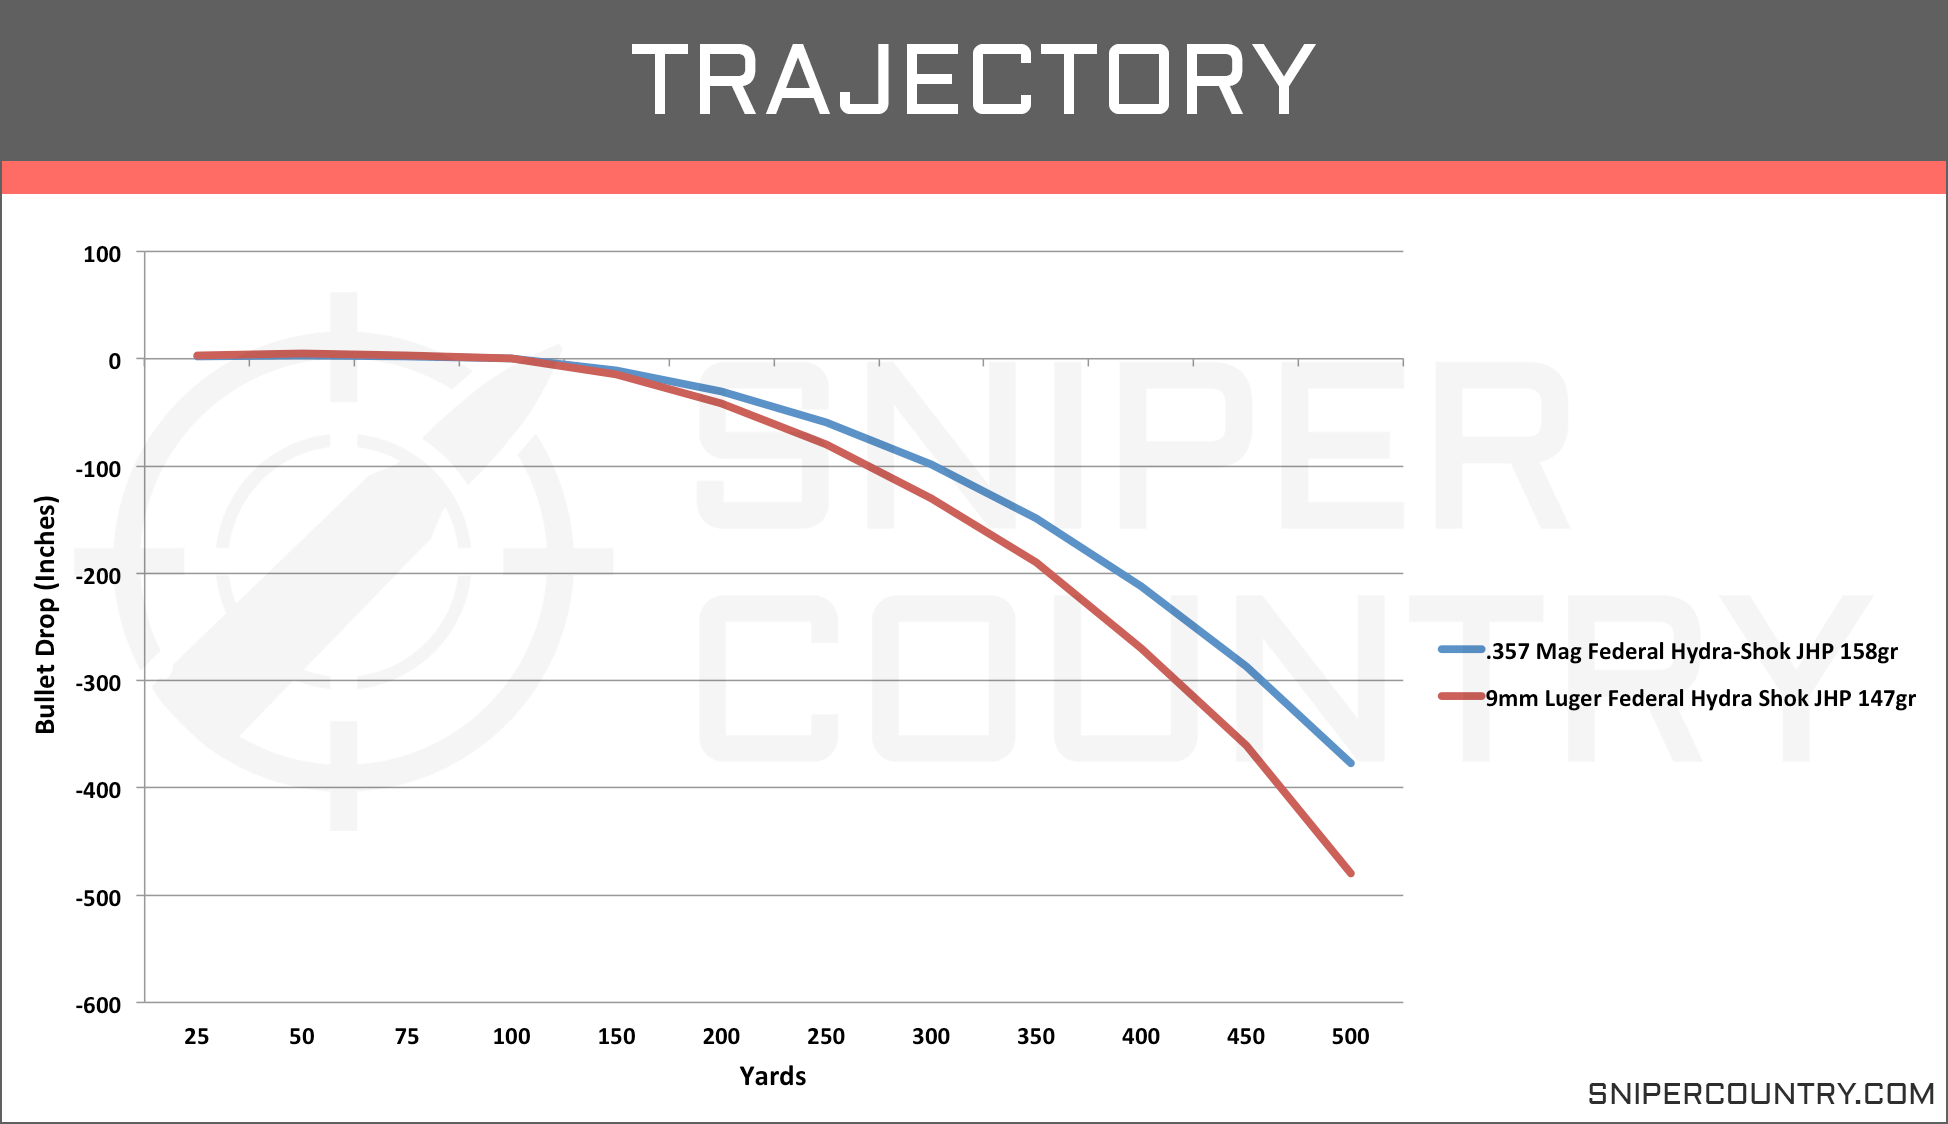 Trajectory .357 Mag vs 9mm